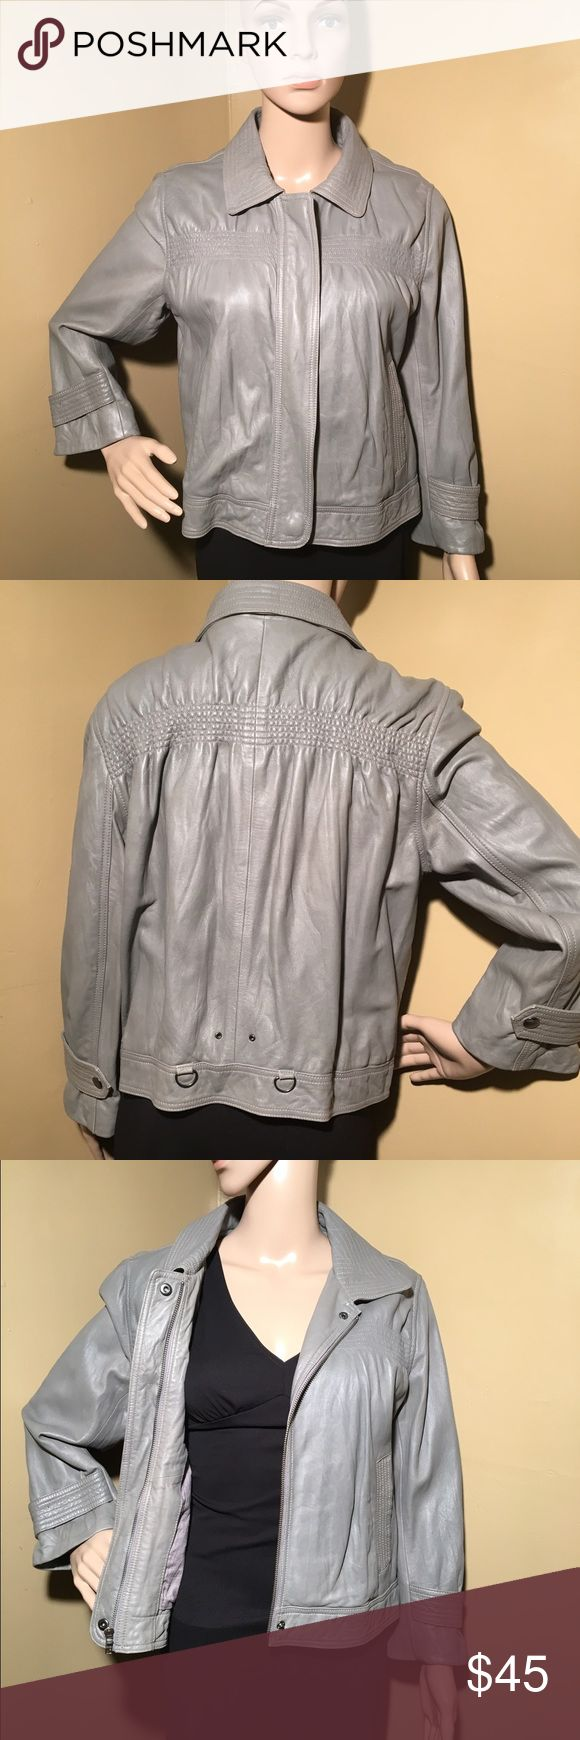 Loft Ann Taylor gray leather jacket size 10 **offers accepted **This is a leather jacket by Loft Ann Taylor. It's a size 10. 100% genuine leather. Please look at measurement pictures that I posted. This jacket is great paired with any outfit. LOFT Jackets & Coats